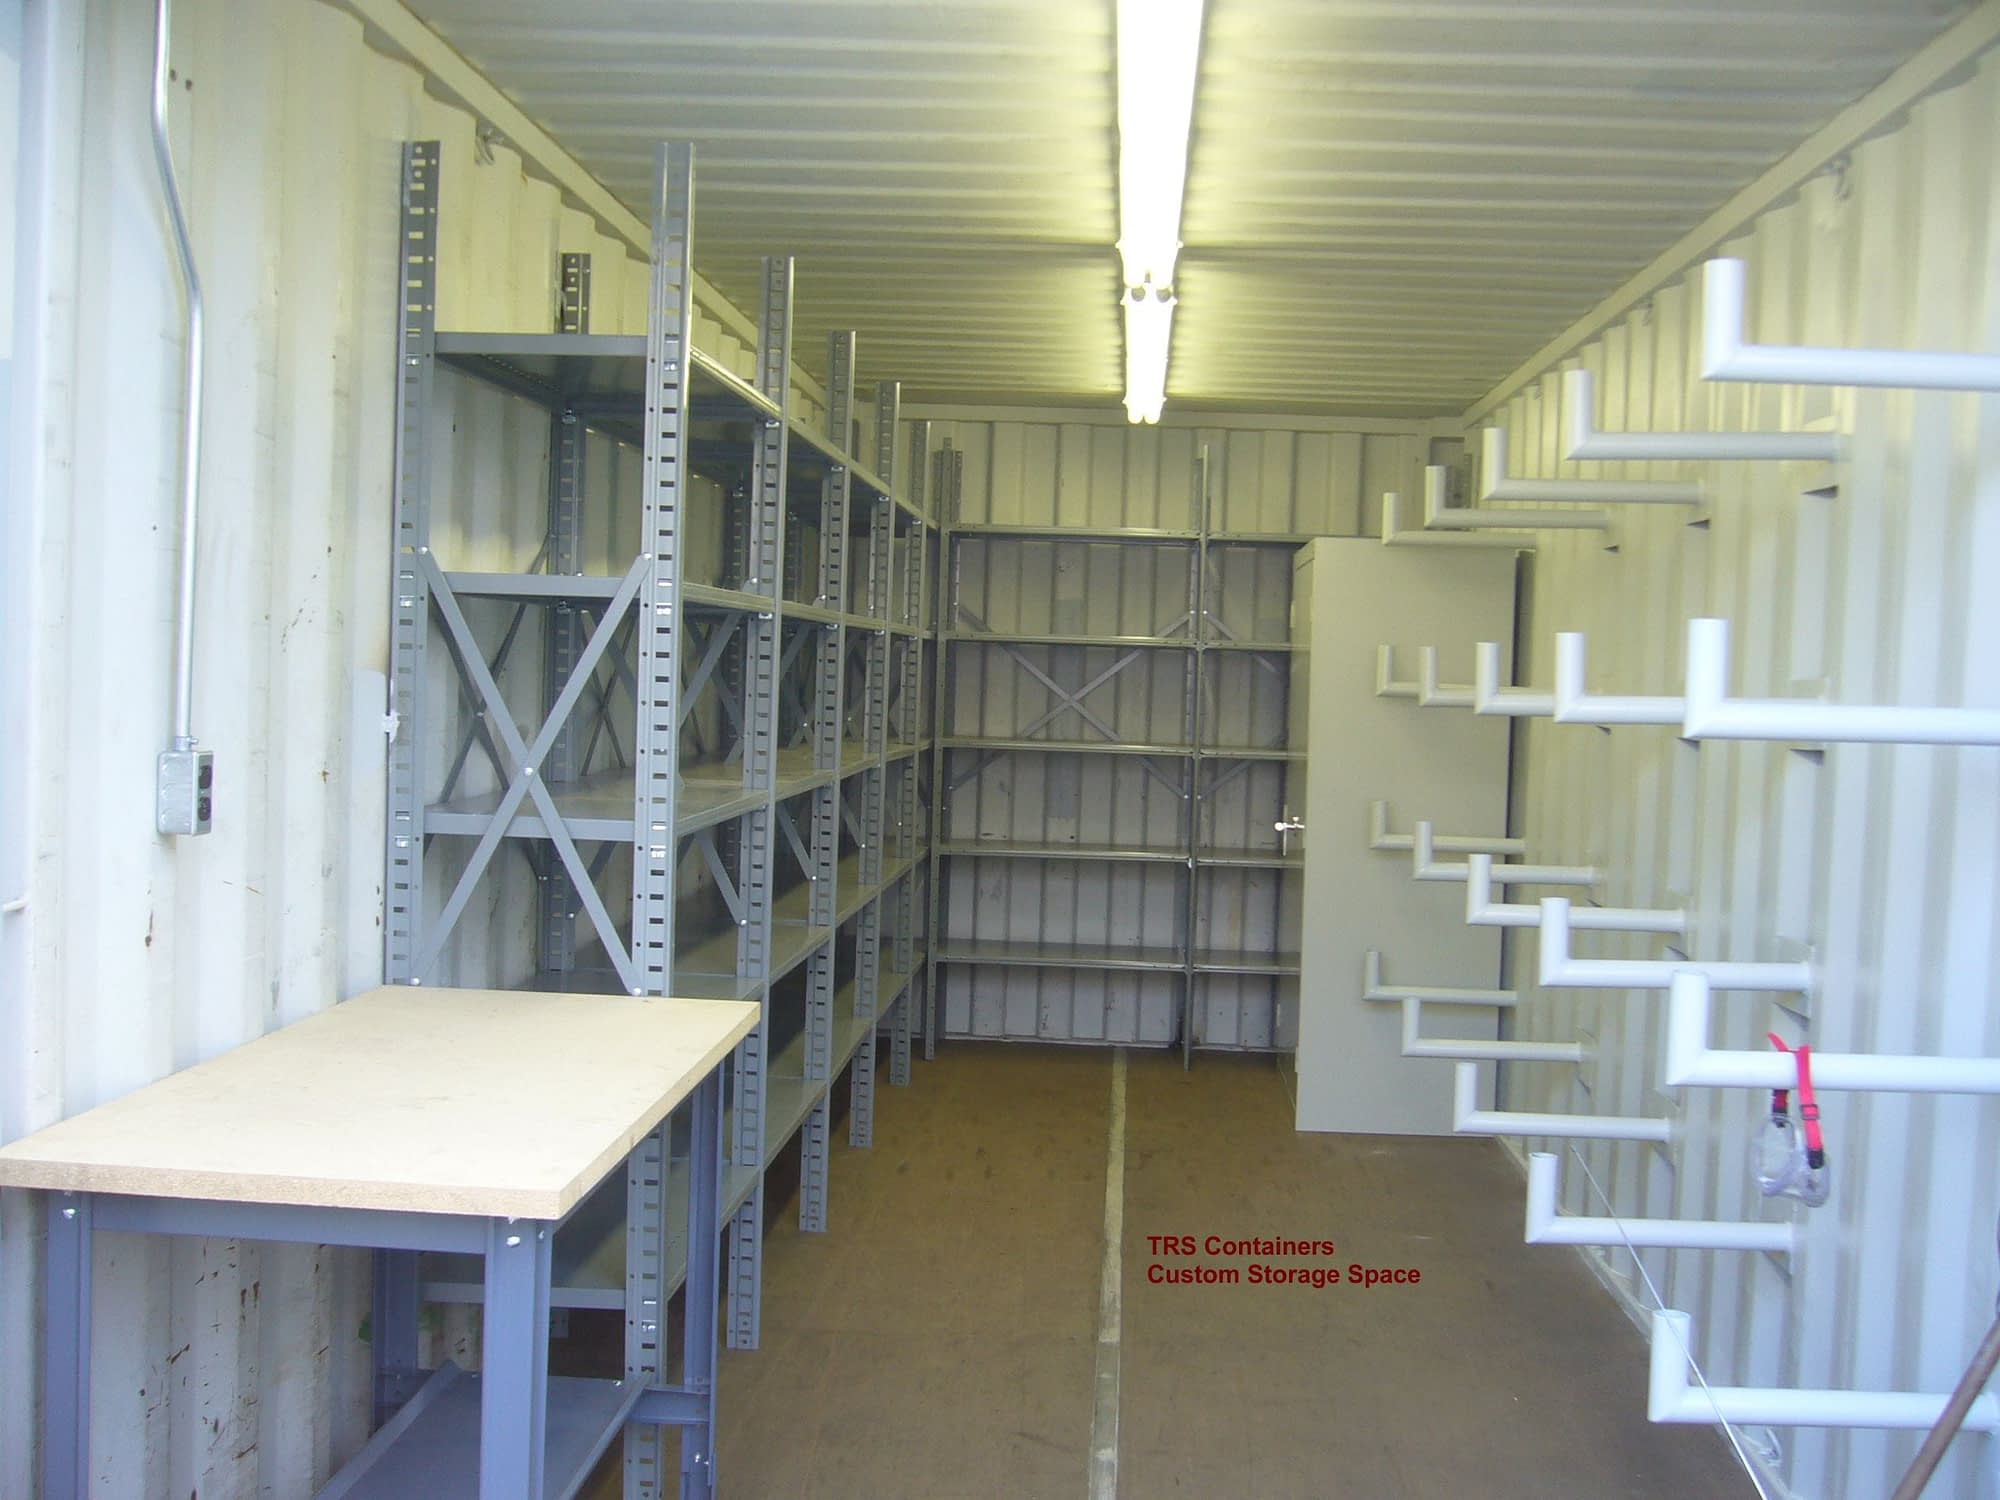 TRS Containers can modify steel shipping containers for custom storage space